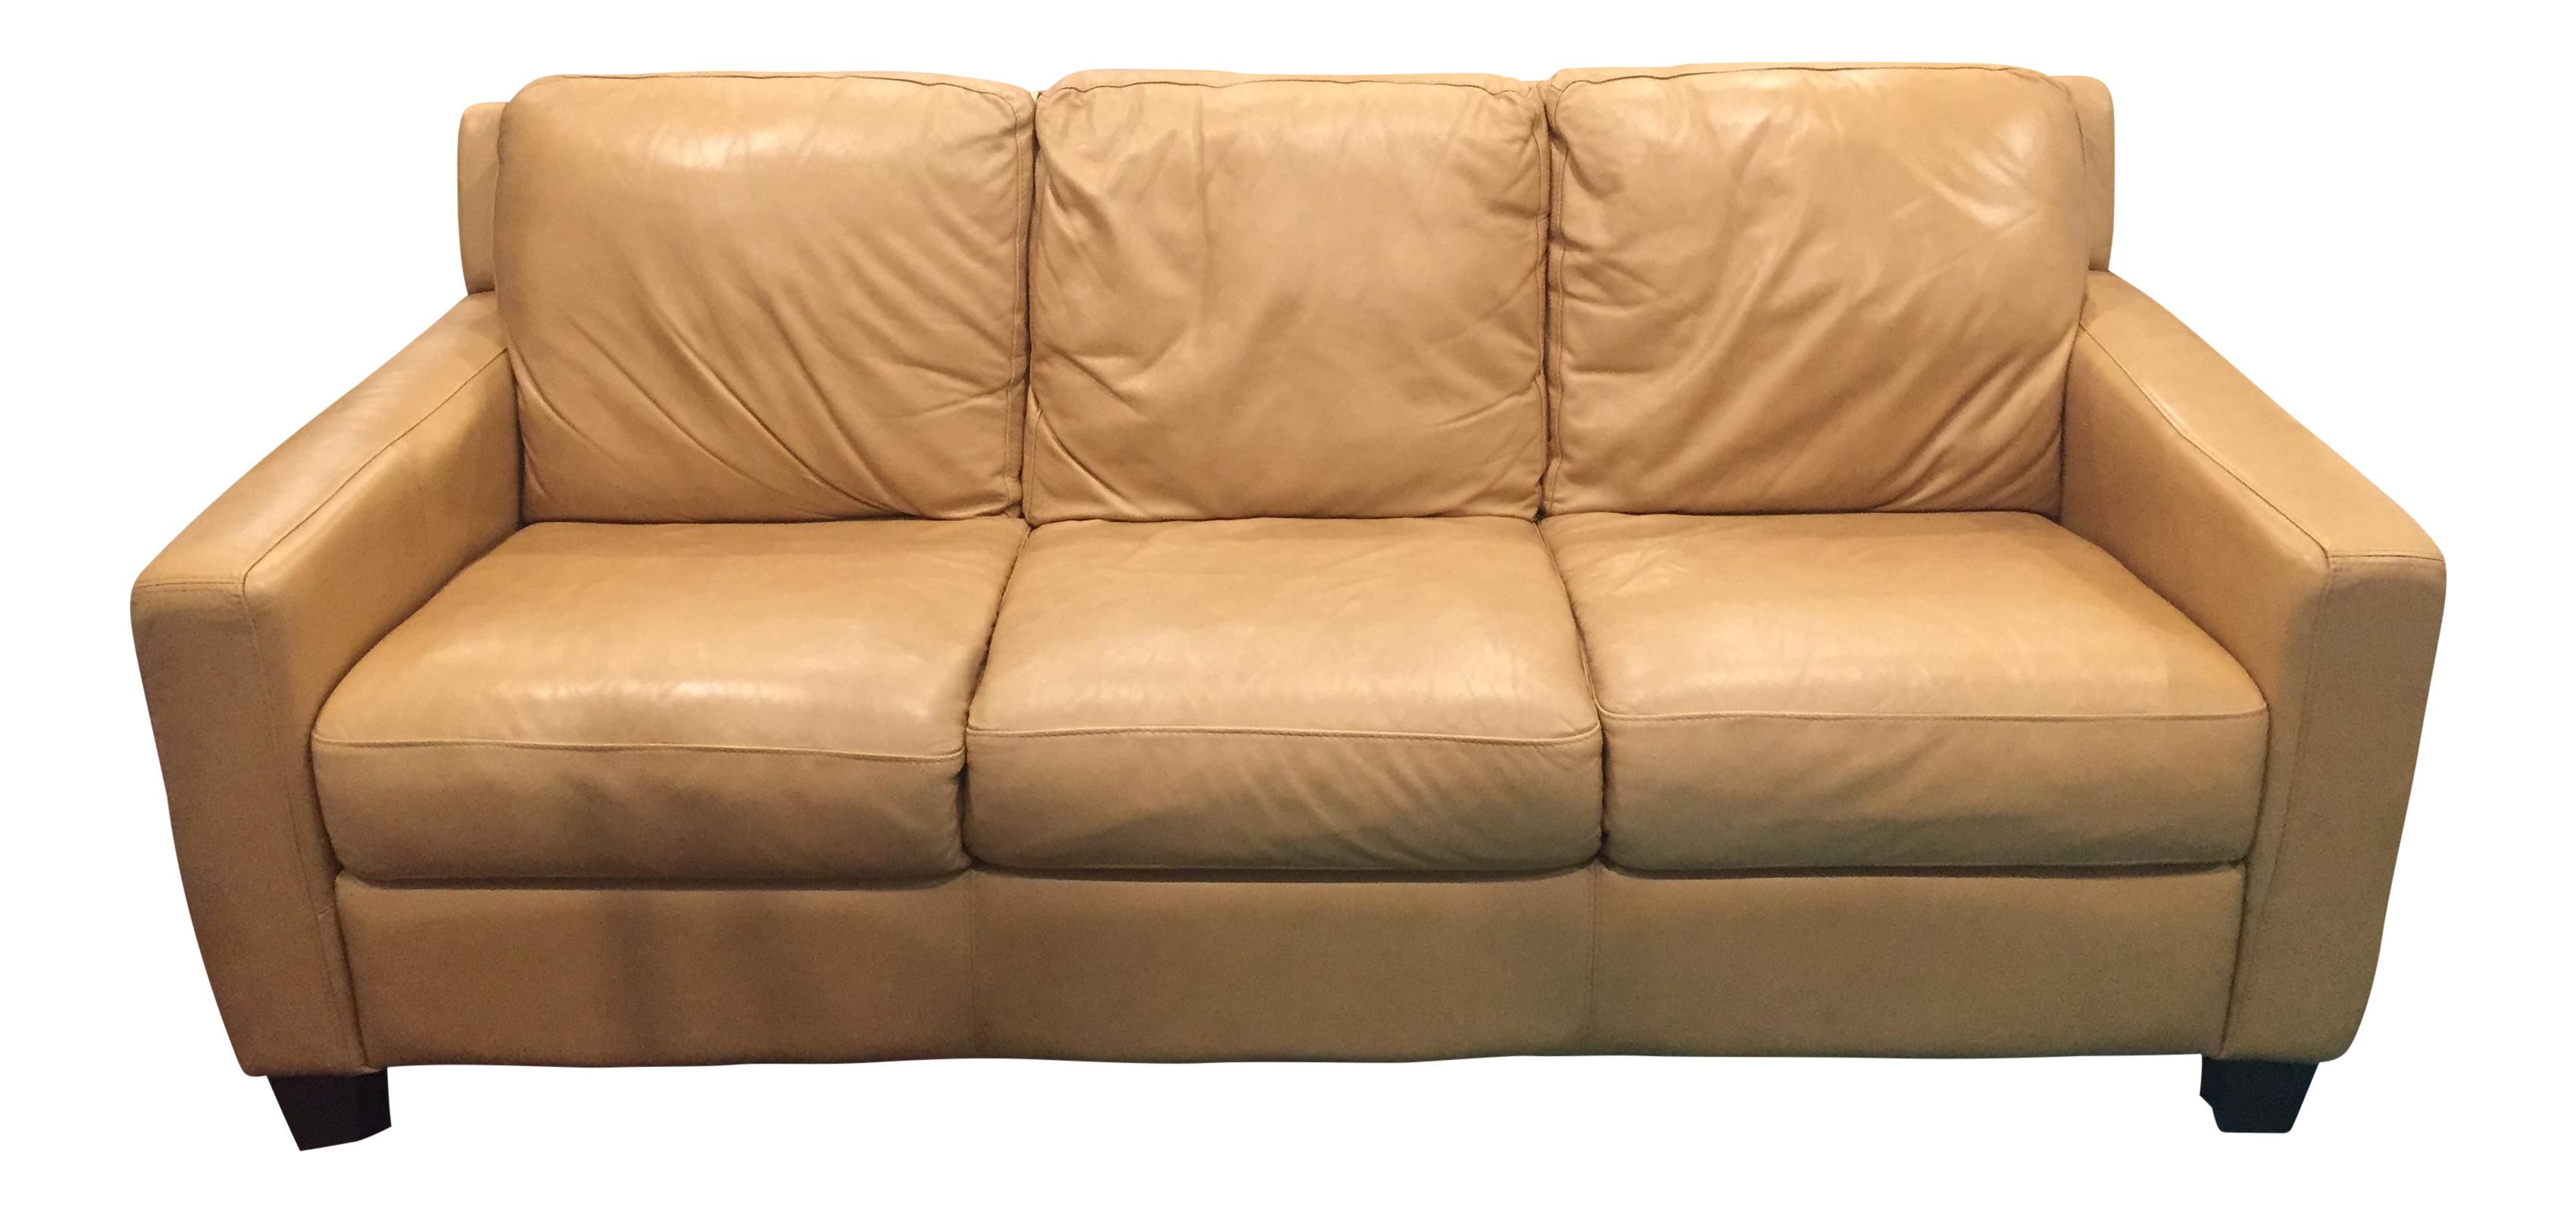 Cau D Ax Italian Leather Sofa Avarii Org Home Design Best Ideas